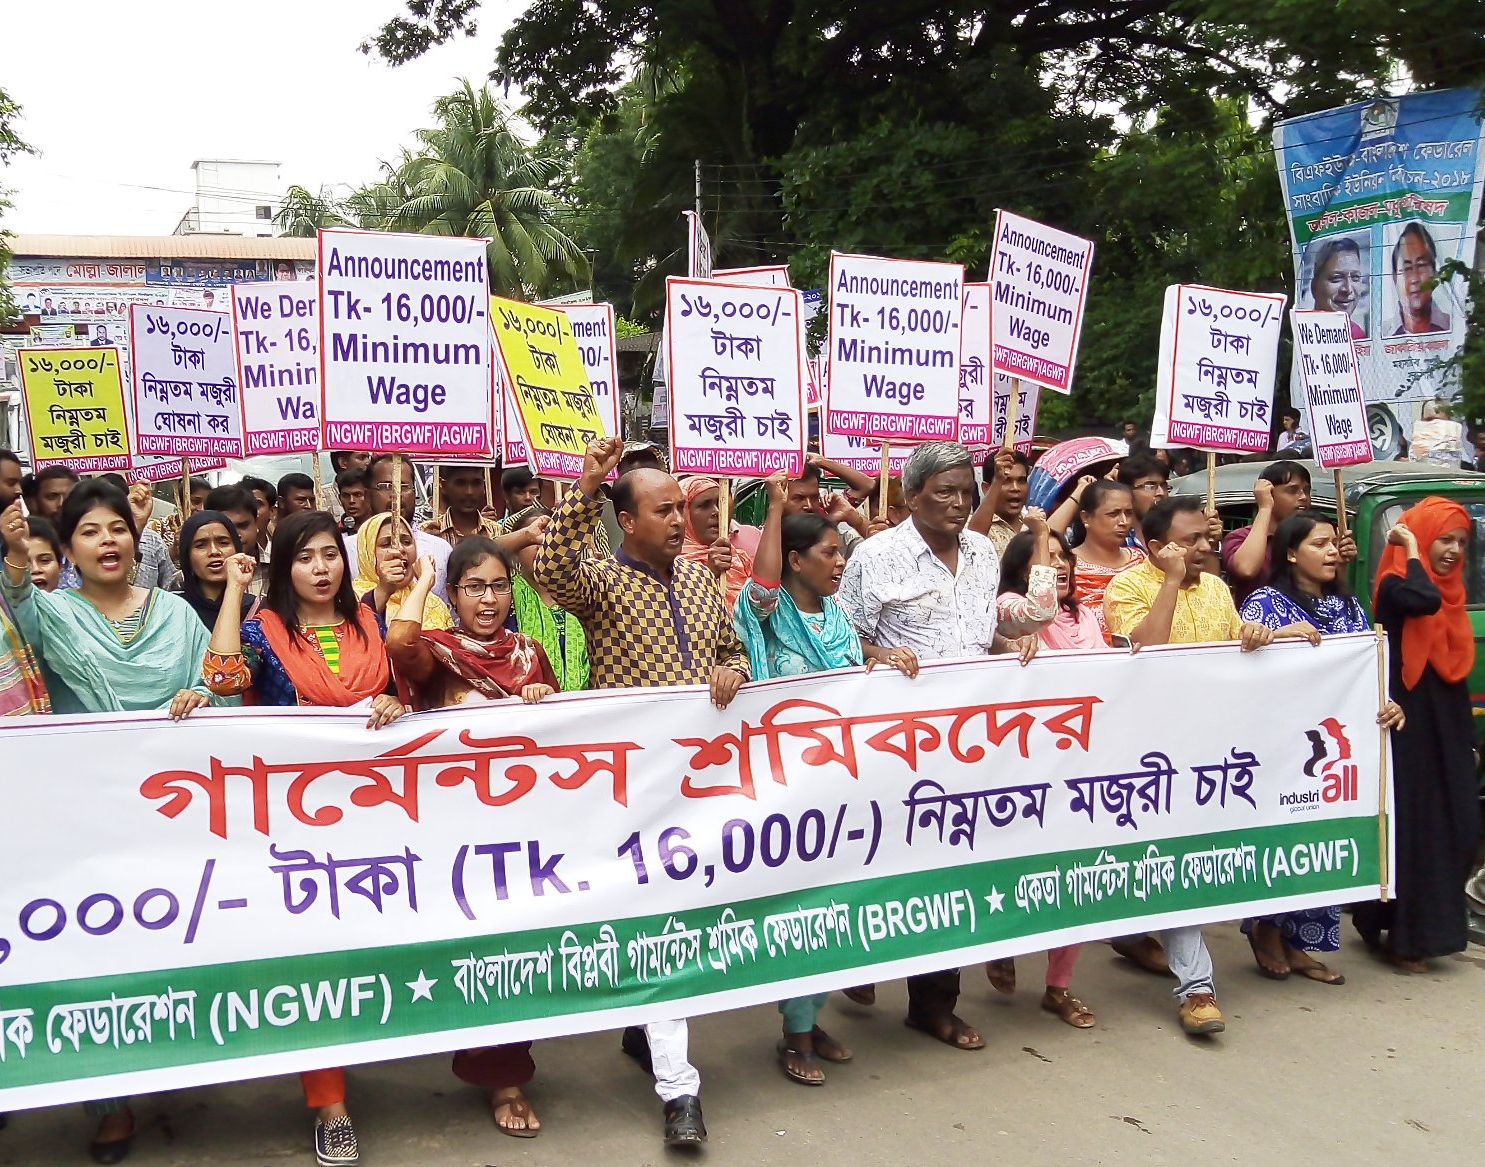 Bangladesh Workers go on hunger strike - Labour Behind the